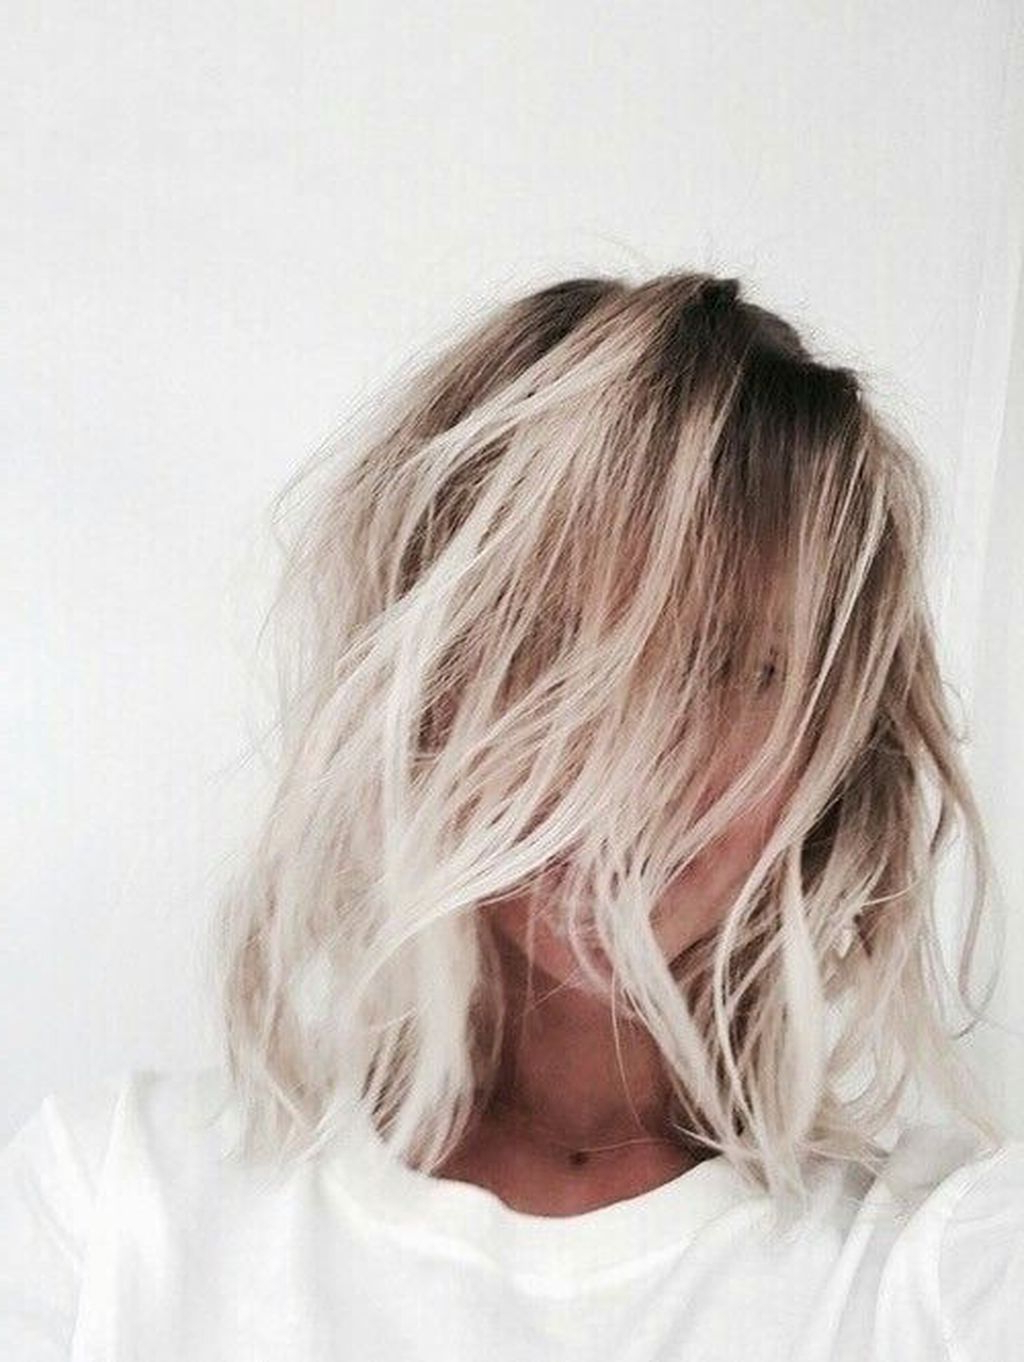 Well Liked Long Texture Revealing Layers Hairstyles Throughout 30+ Inspiring Textured Revealing Layered Haircuts Ideas (View 11 of 20)